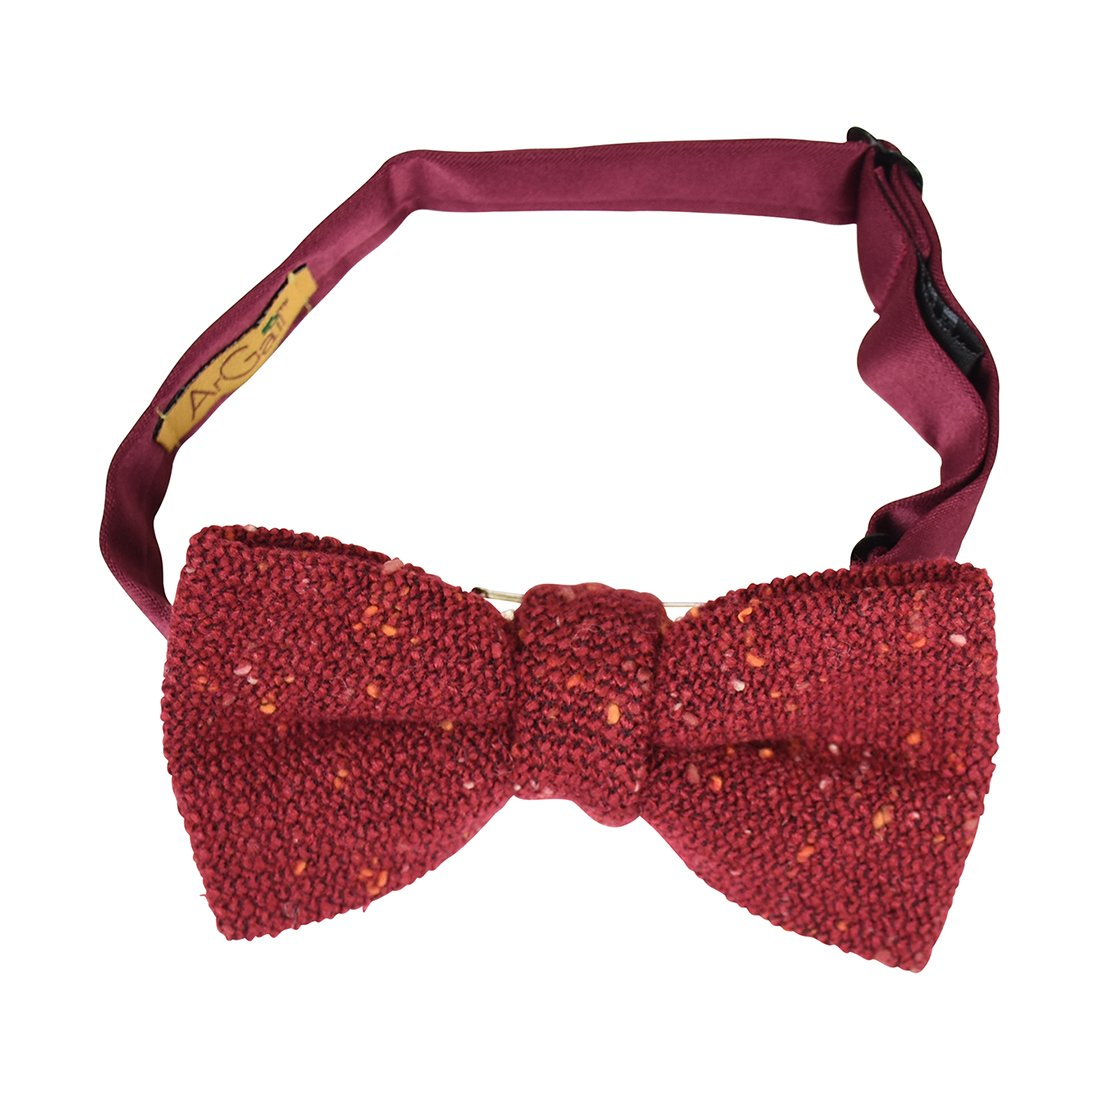 Speckled Tweed Retro Bow Tie for Boys - Black DaCee Designs Accessories AGBT0012BK